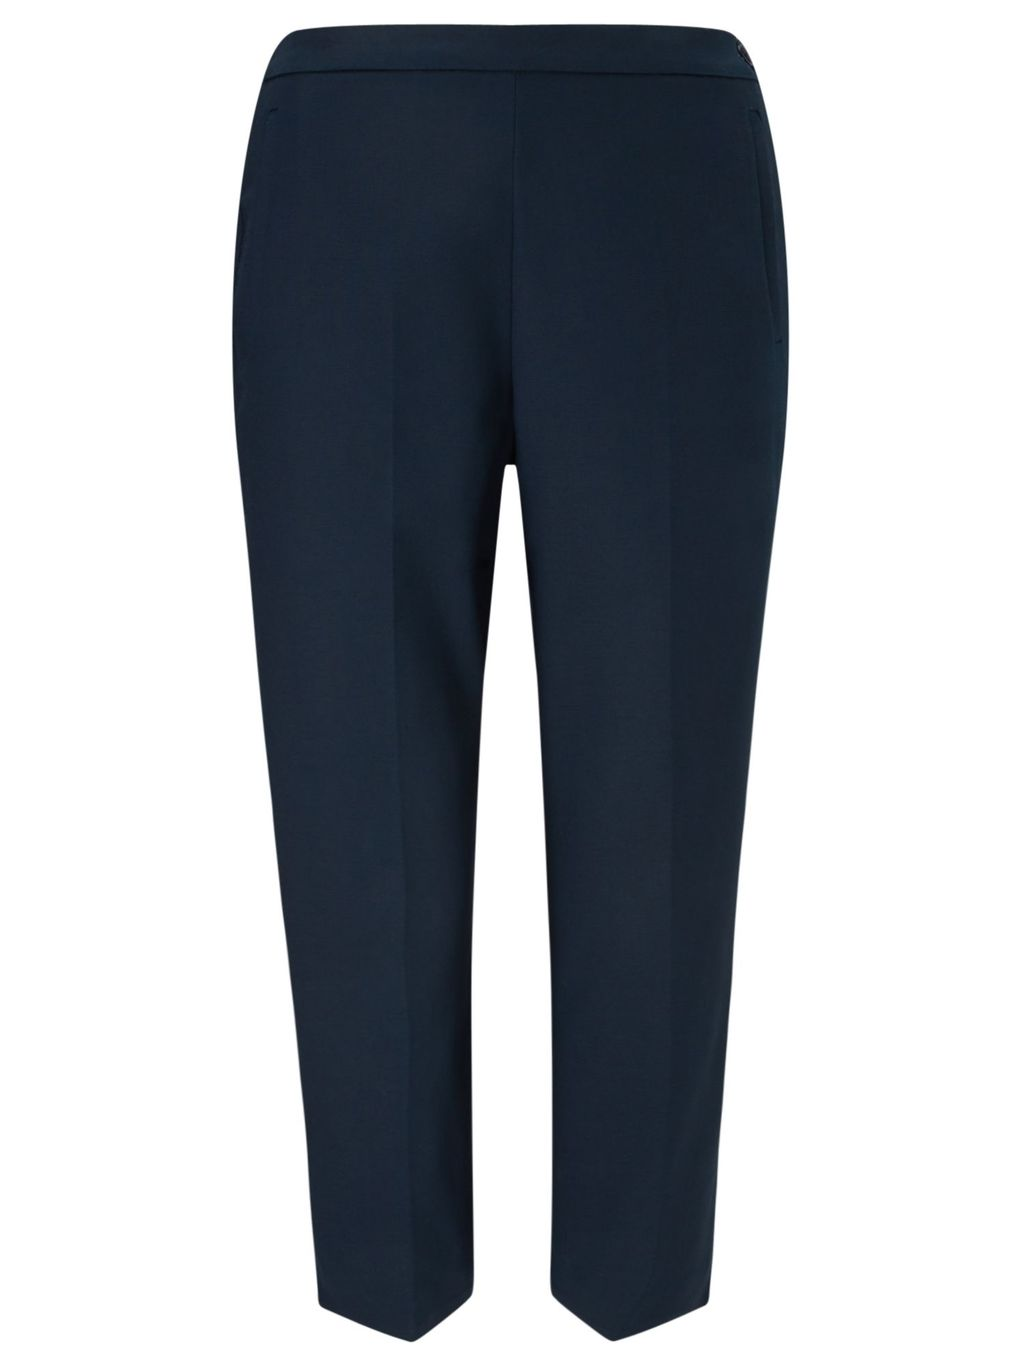 Crop Trouser, Navy - length: standard; pattern: plain; waist: mid/regular rise; predominant colour: navy; occasions: work; fibres: cotton - stretch; waist detail: feature waist detail; texture group: cotton feel fabrics; fit: slim leg; pattern type: fabric; style: standard; season: s/s 2016; wardrobe: basic